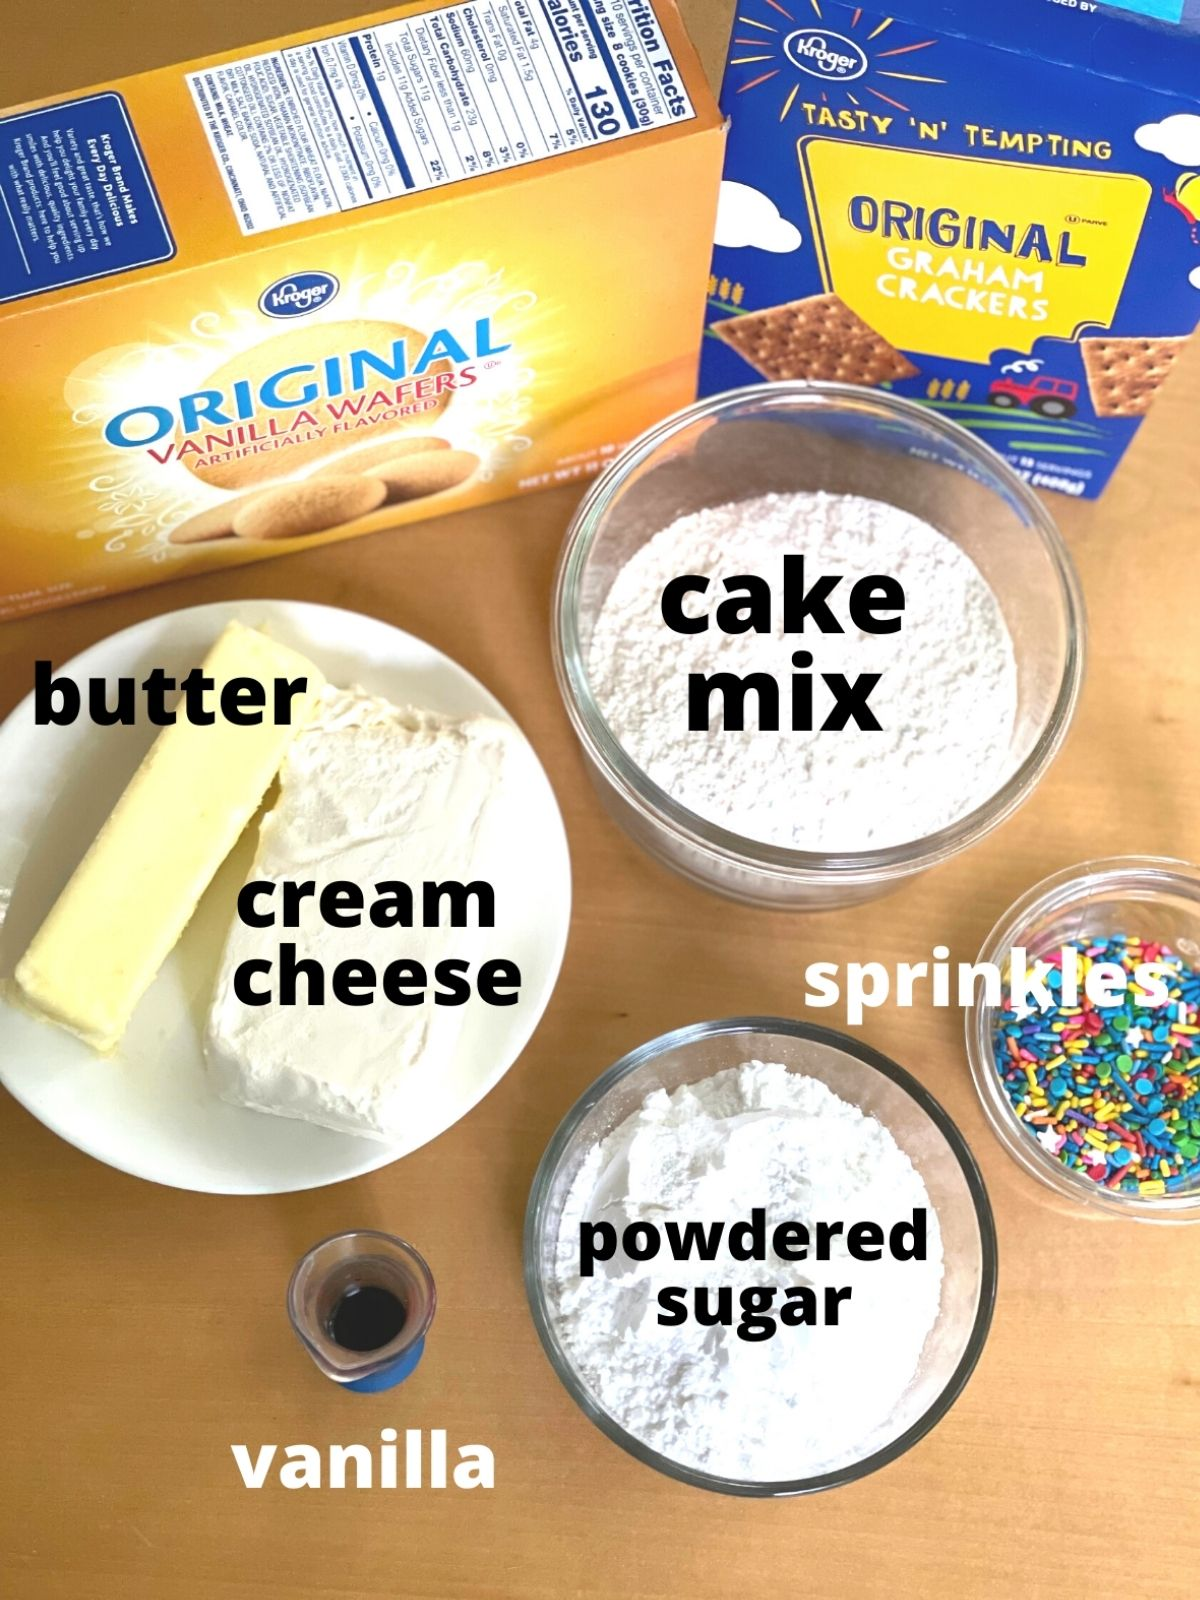 funfetti dip ingredients: butter, cream cheese, cake mix, powdered sugar, and sprinkles.